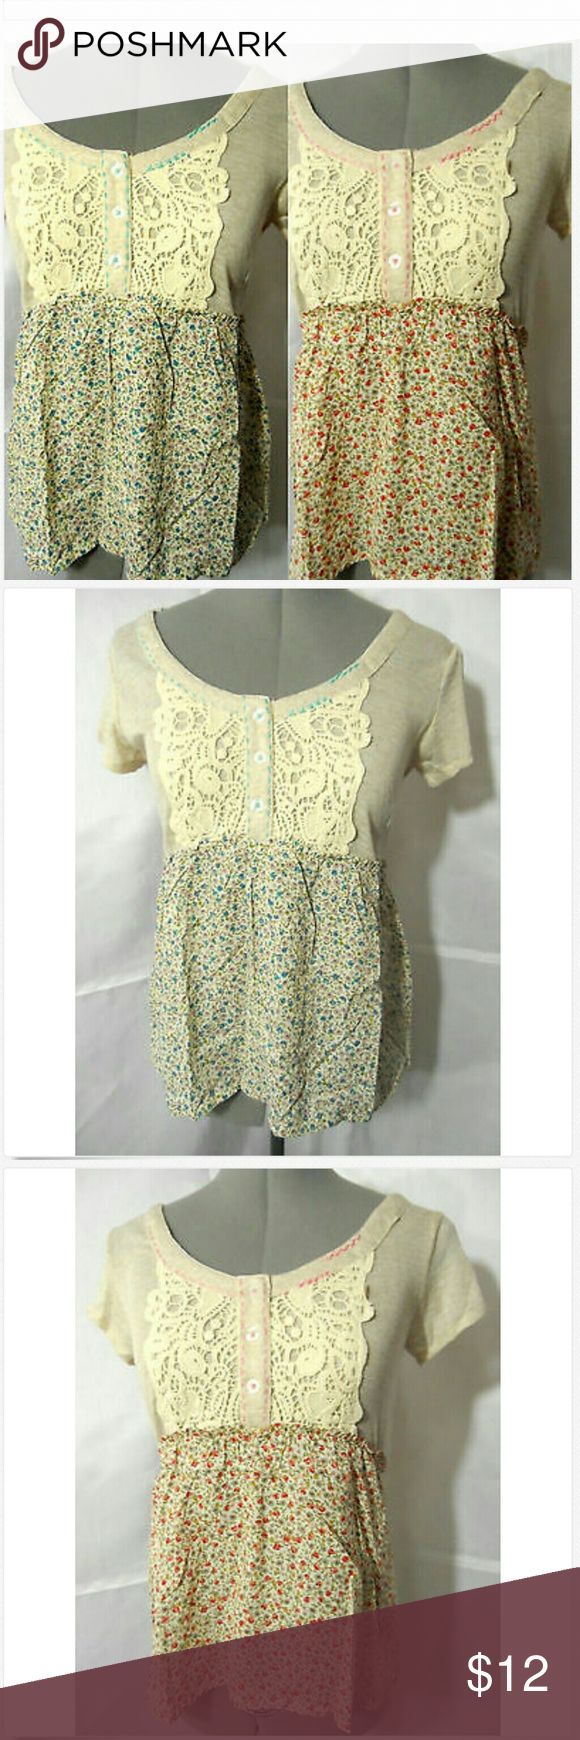 "Nwt ANINA Western Babydoll Tops Crochet & Floral Individual monitors may display slightly different colors and hues...   NEW WITH TAGS-   ANINA Crochet Lace top   TAG SIZE: S, M or L junior BUST: S- 34"" M- 36"" L-38""  LENGTH: all are about 23-24"" from the top of the shoulder down   Crochet lace trim applique! Scoop neck Fantastic wide embroidered stitching Smocked empire waist Floral pattern Short ruched cap sleeves Red or Blue floral in color with beige top NEW NEW NEW! Anina Tops Blouses"